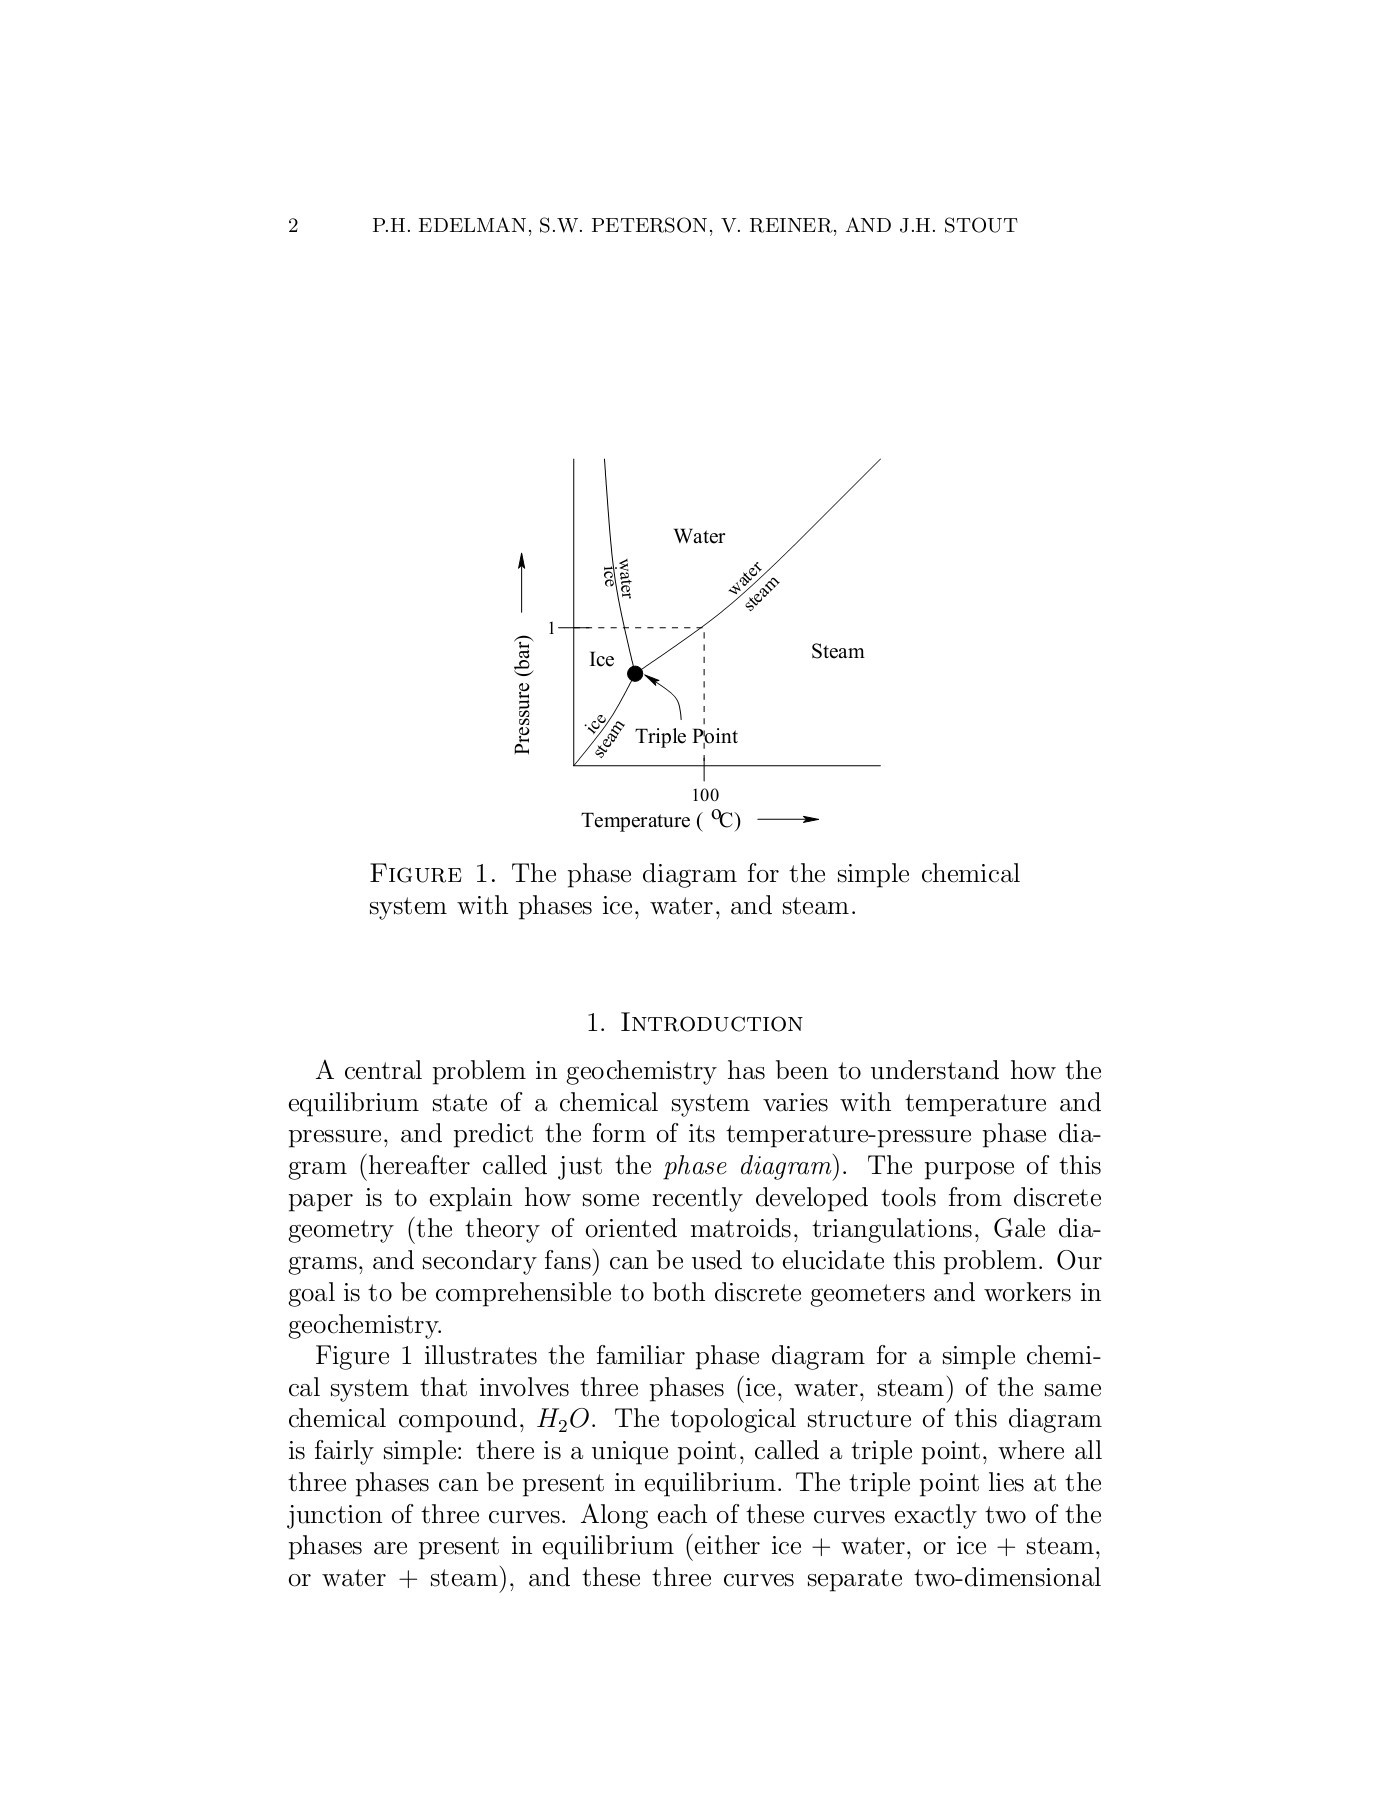 hight resolution of geochemical phase diagrams and gale diagrams